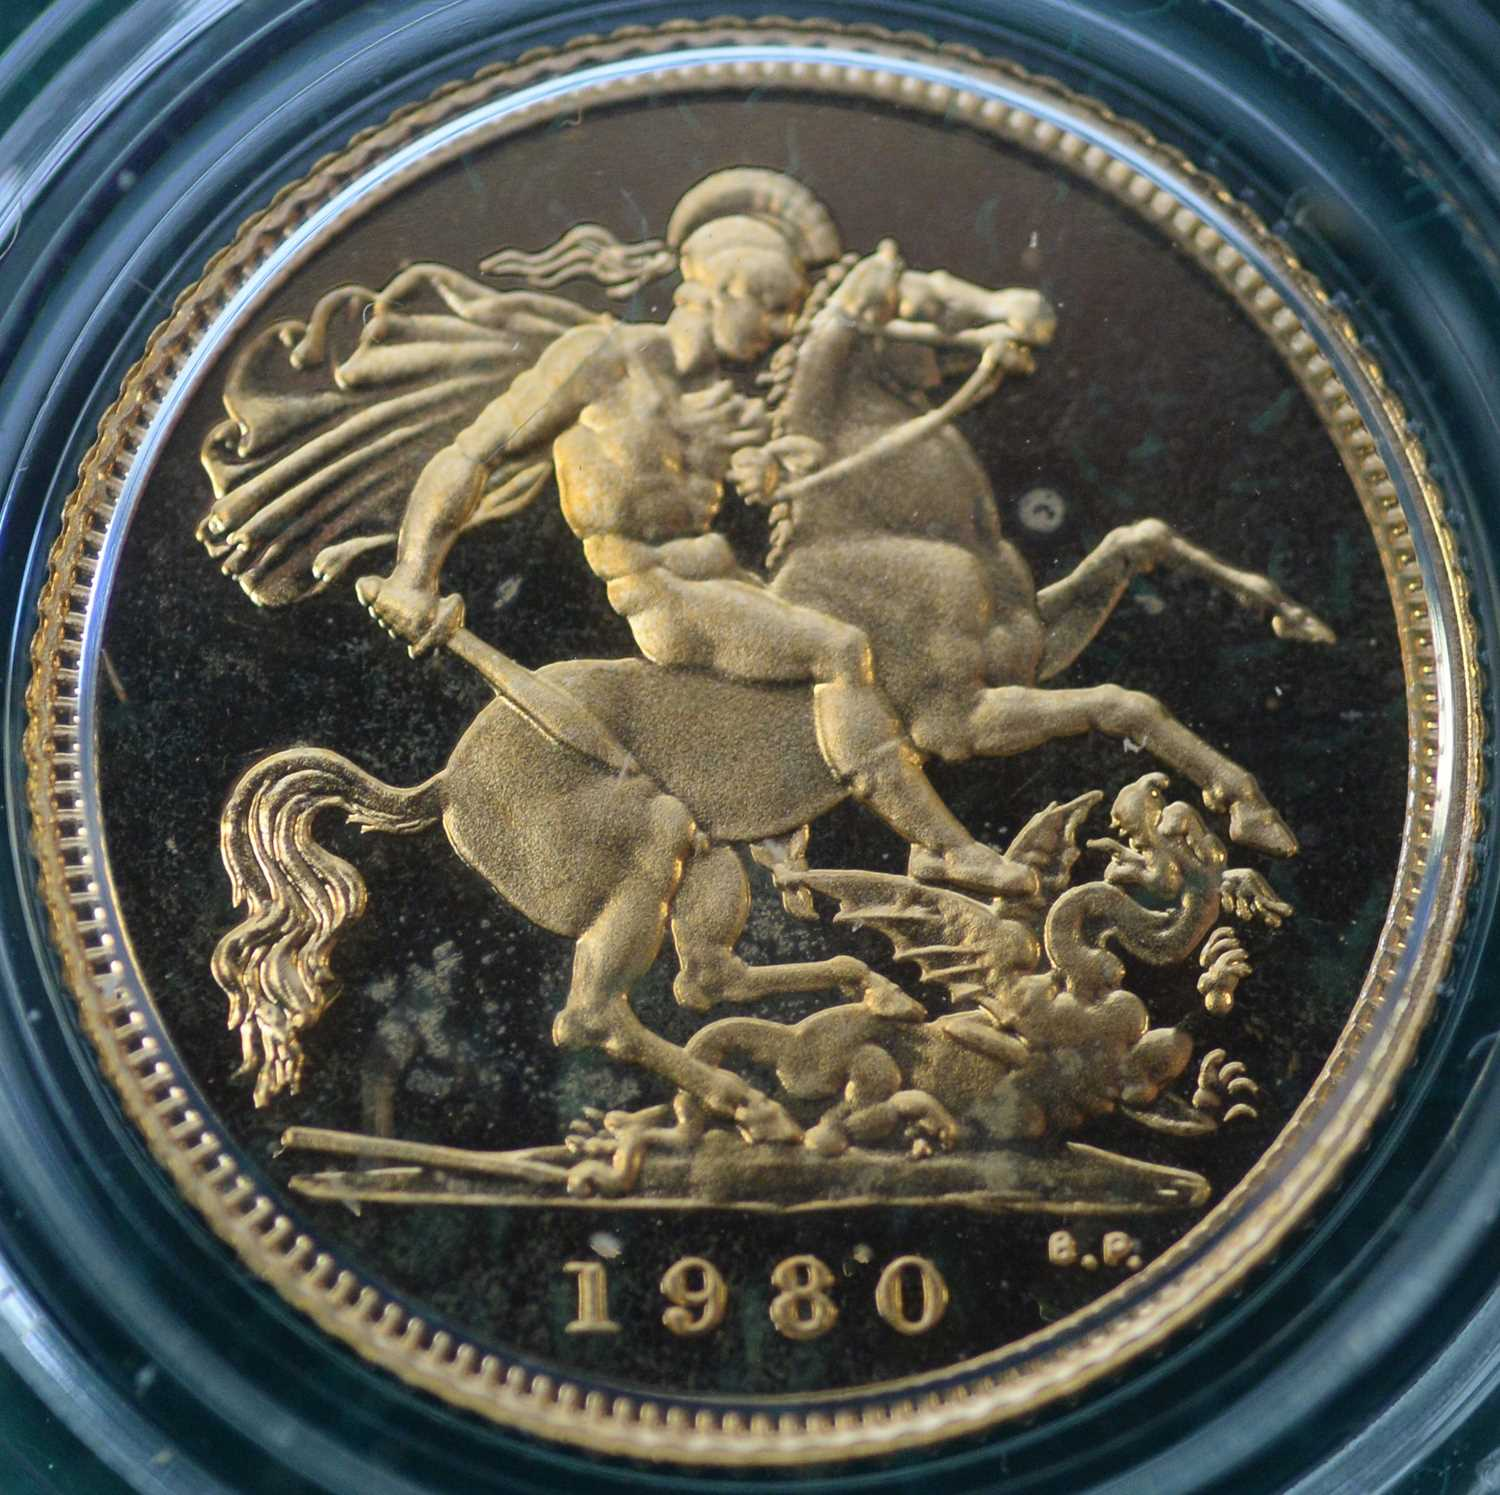 1980 four coin gold proof sovereign set - Image 2 of 8